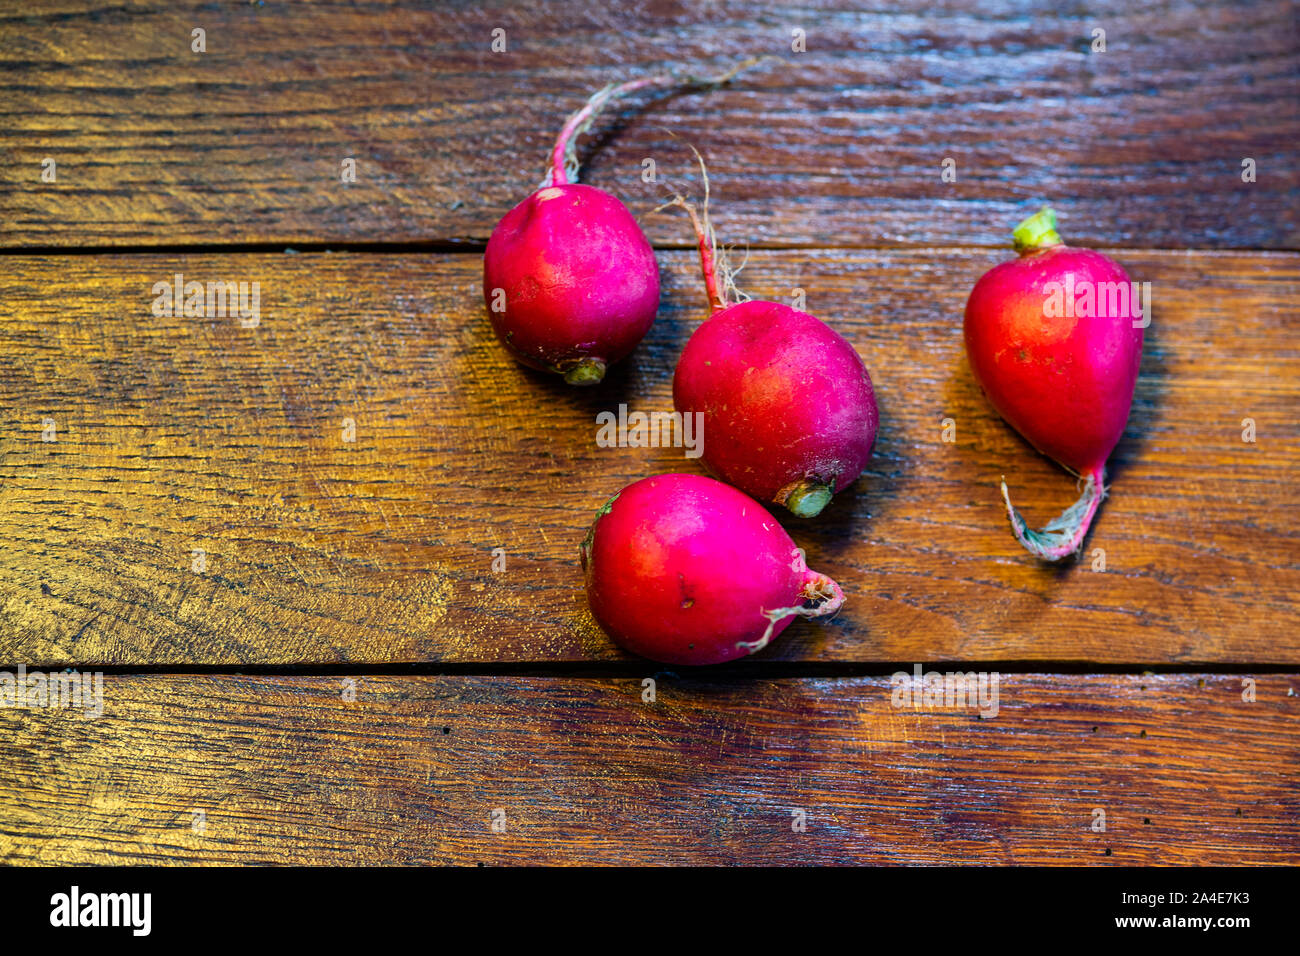 Fresh red radishes on a wooden board. Stock Photo